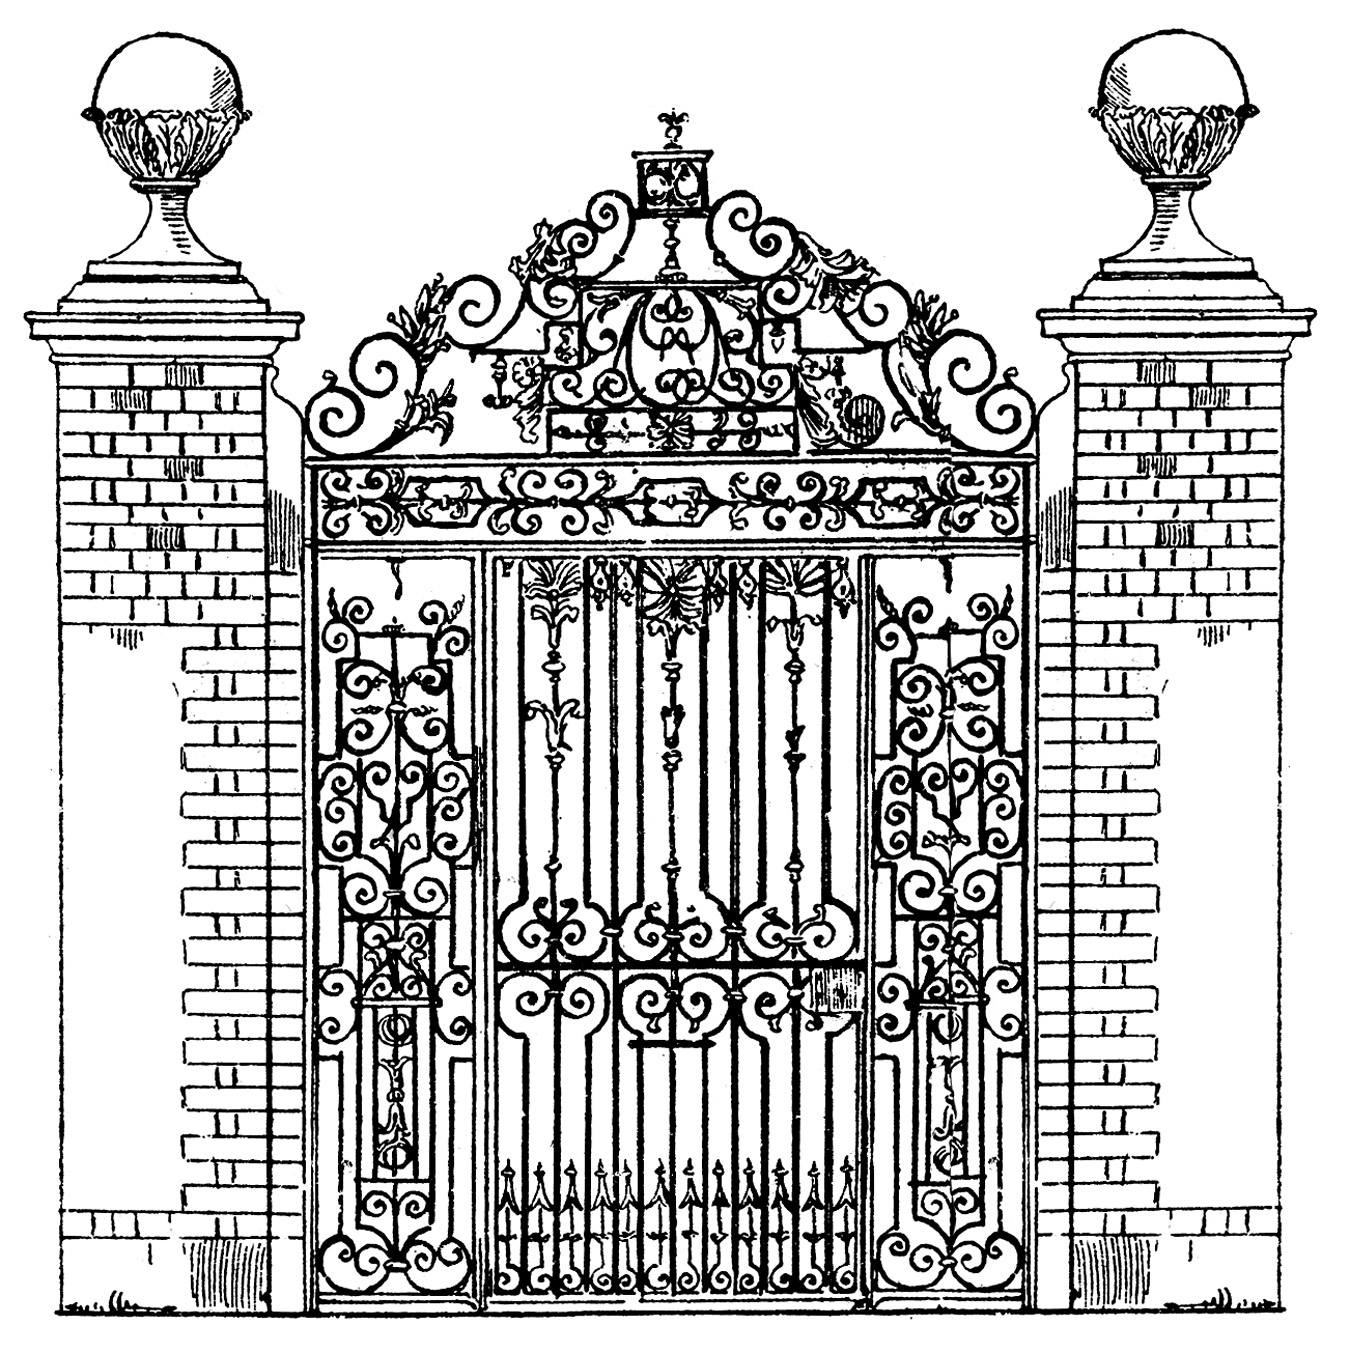 Mansion clipart castle gate Vintage gate Castle clipart *The